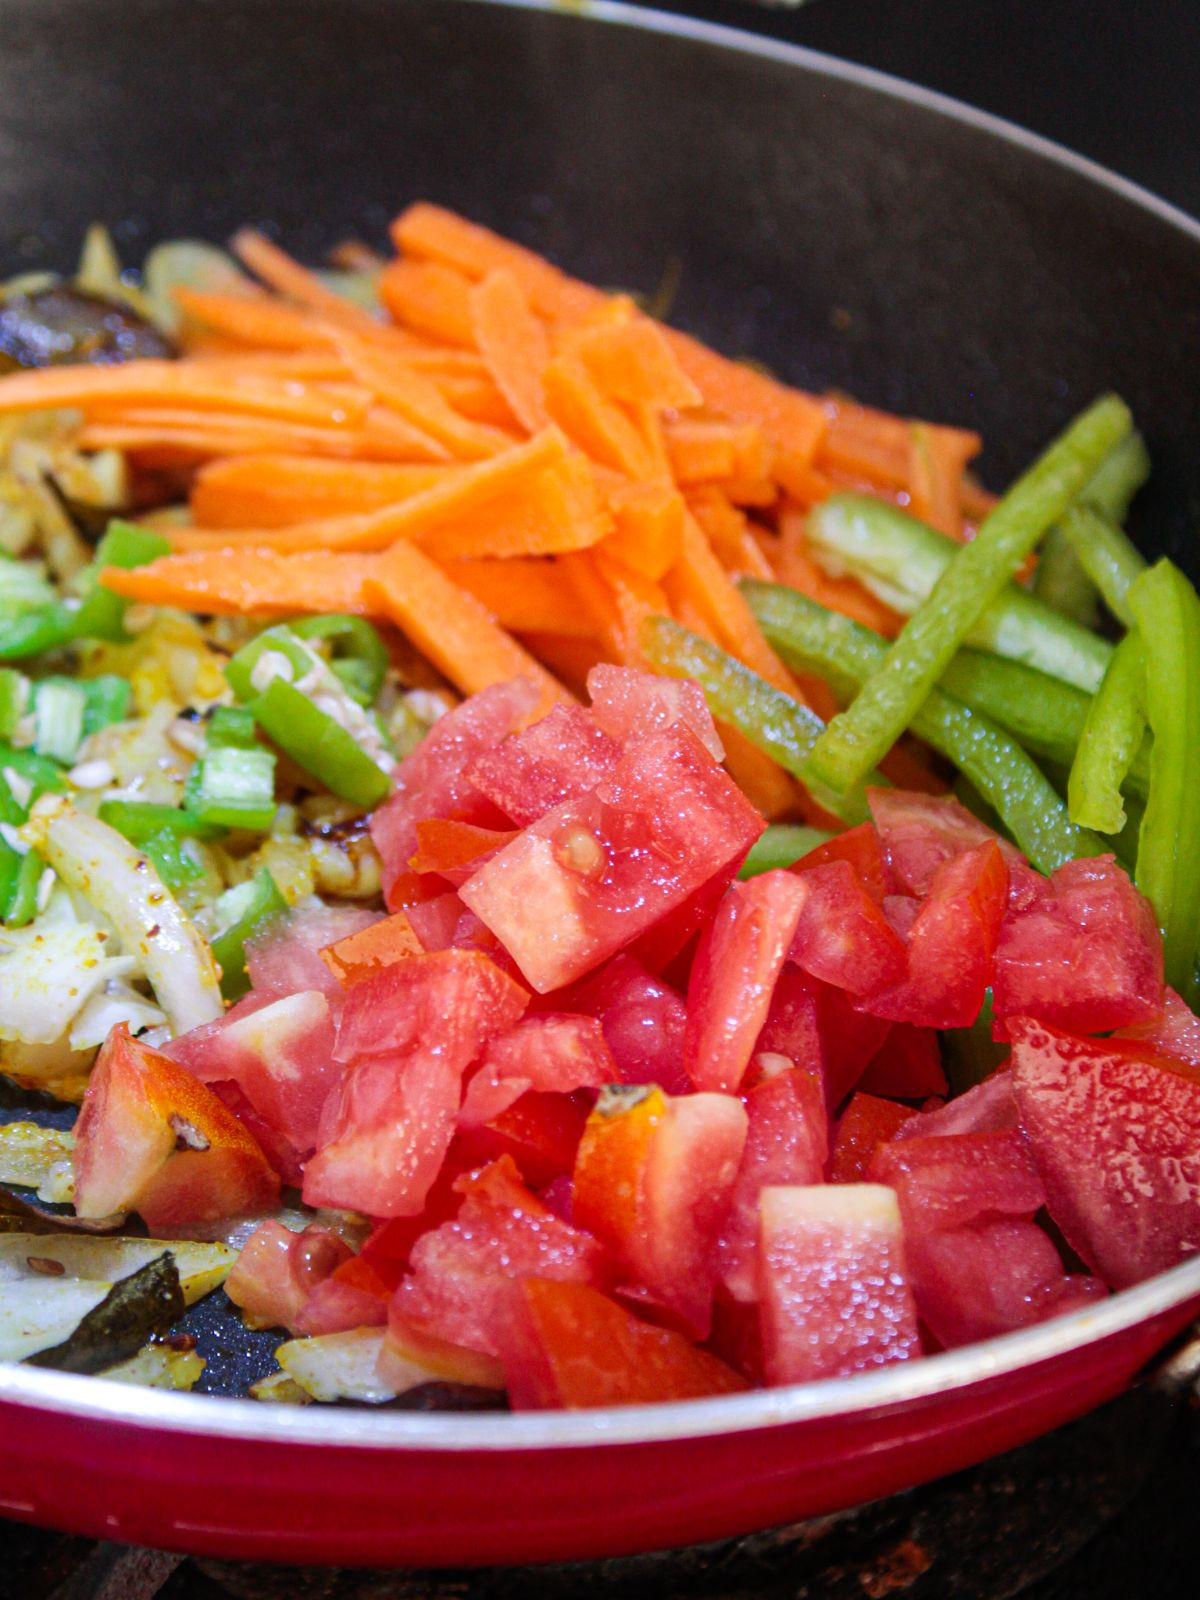 Carrots peppers and tomatoes in large red skillet